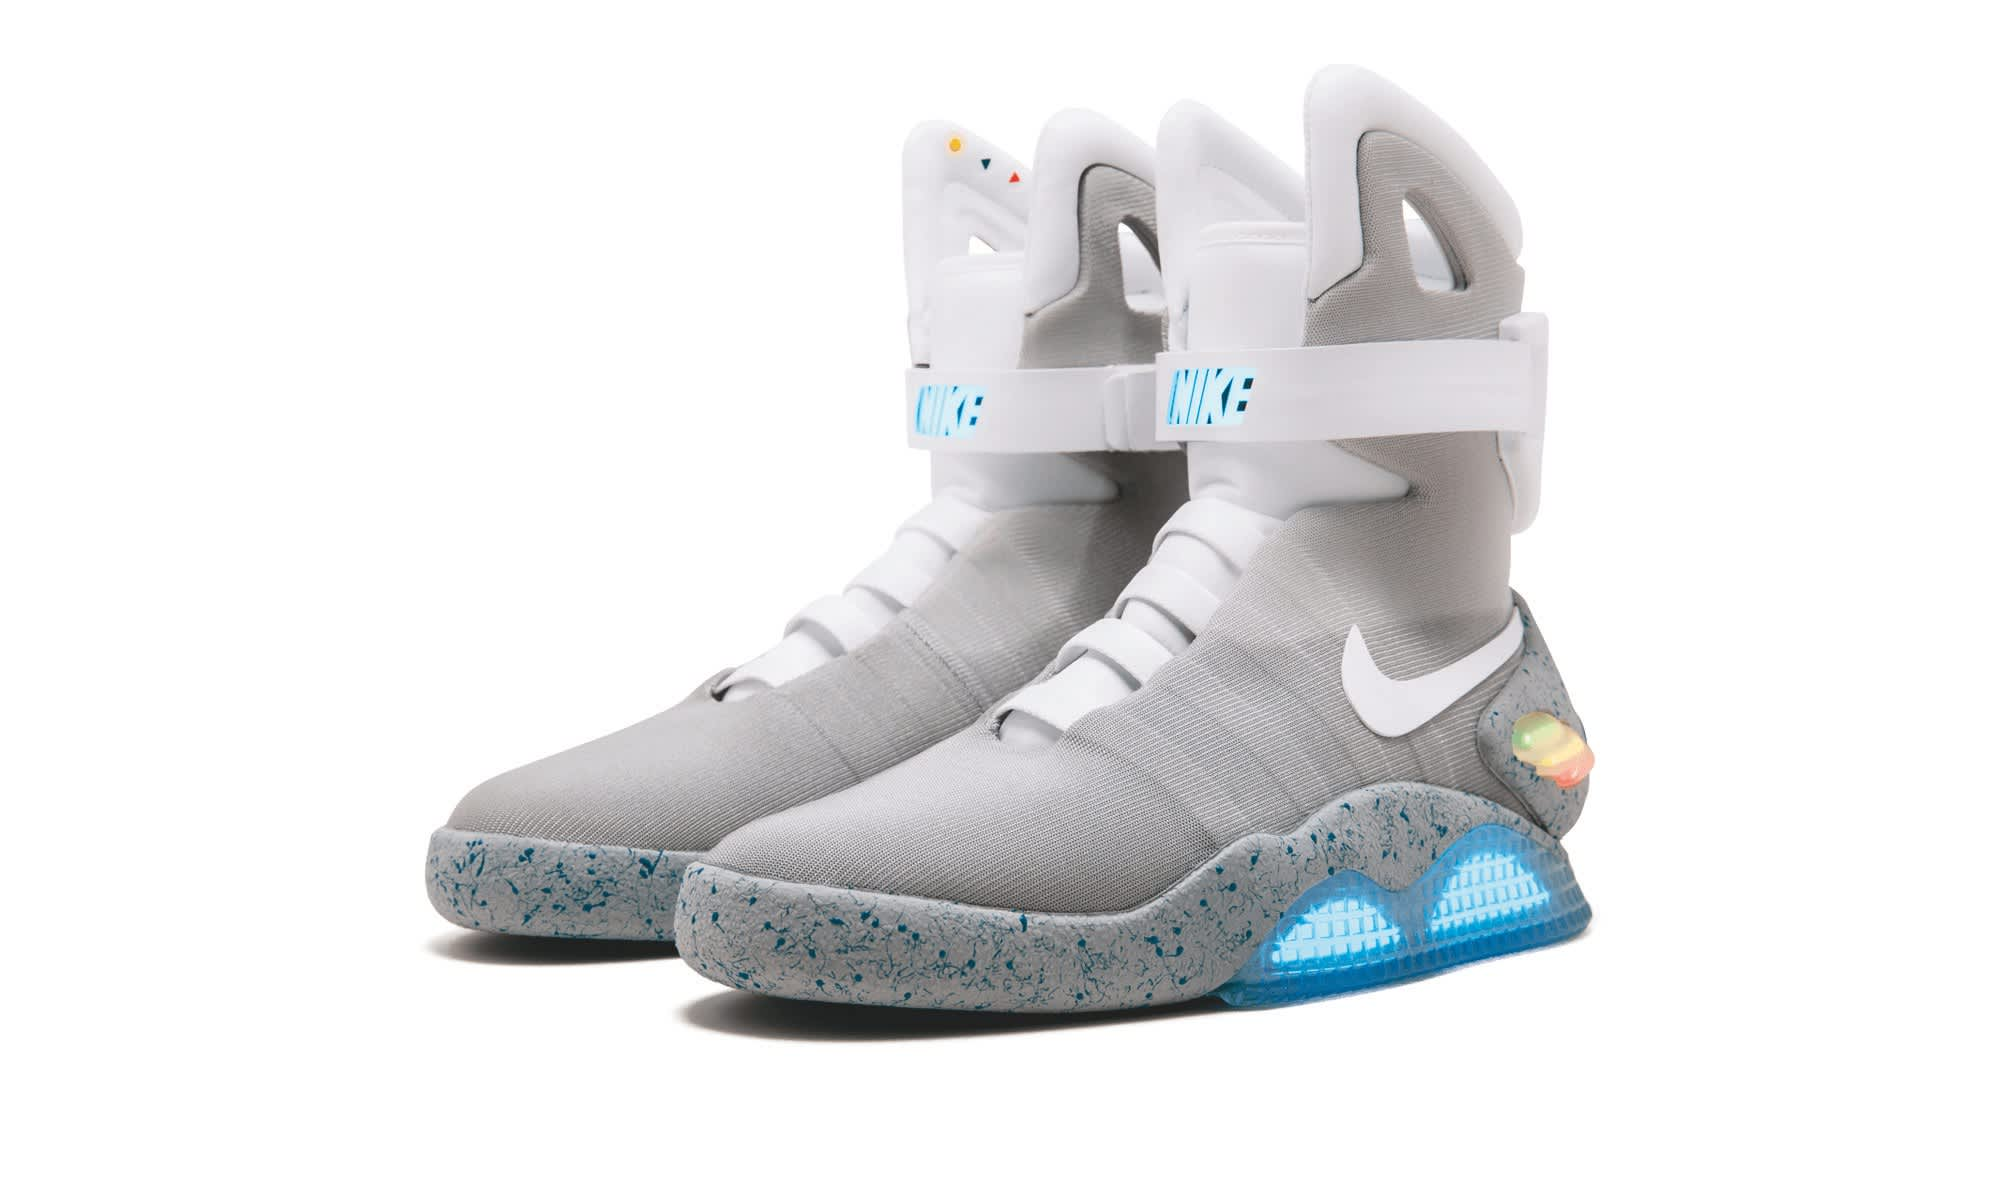 Nike 'moon shoes' and 'Back to the Future' sneakers up for